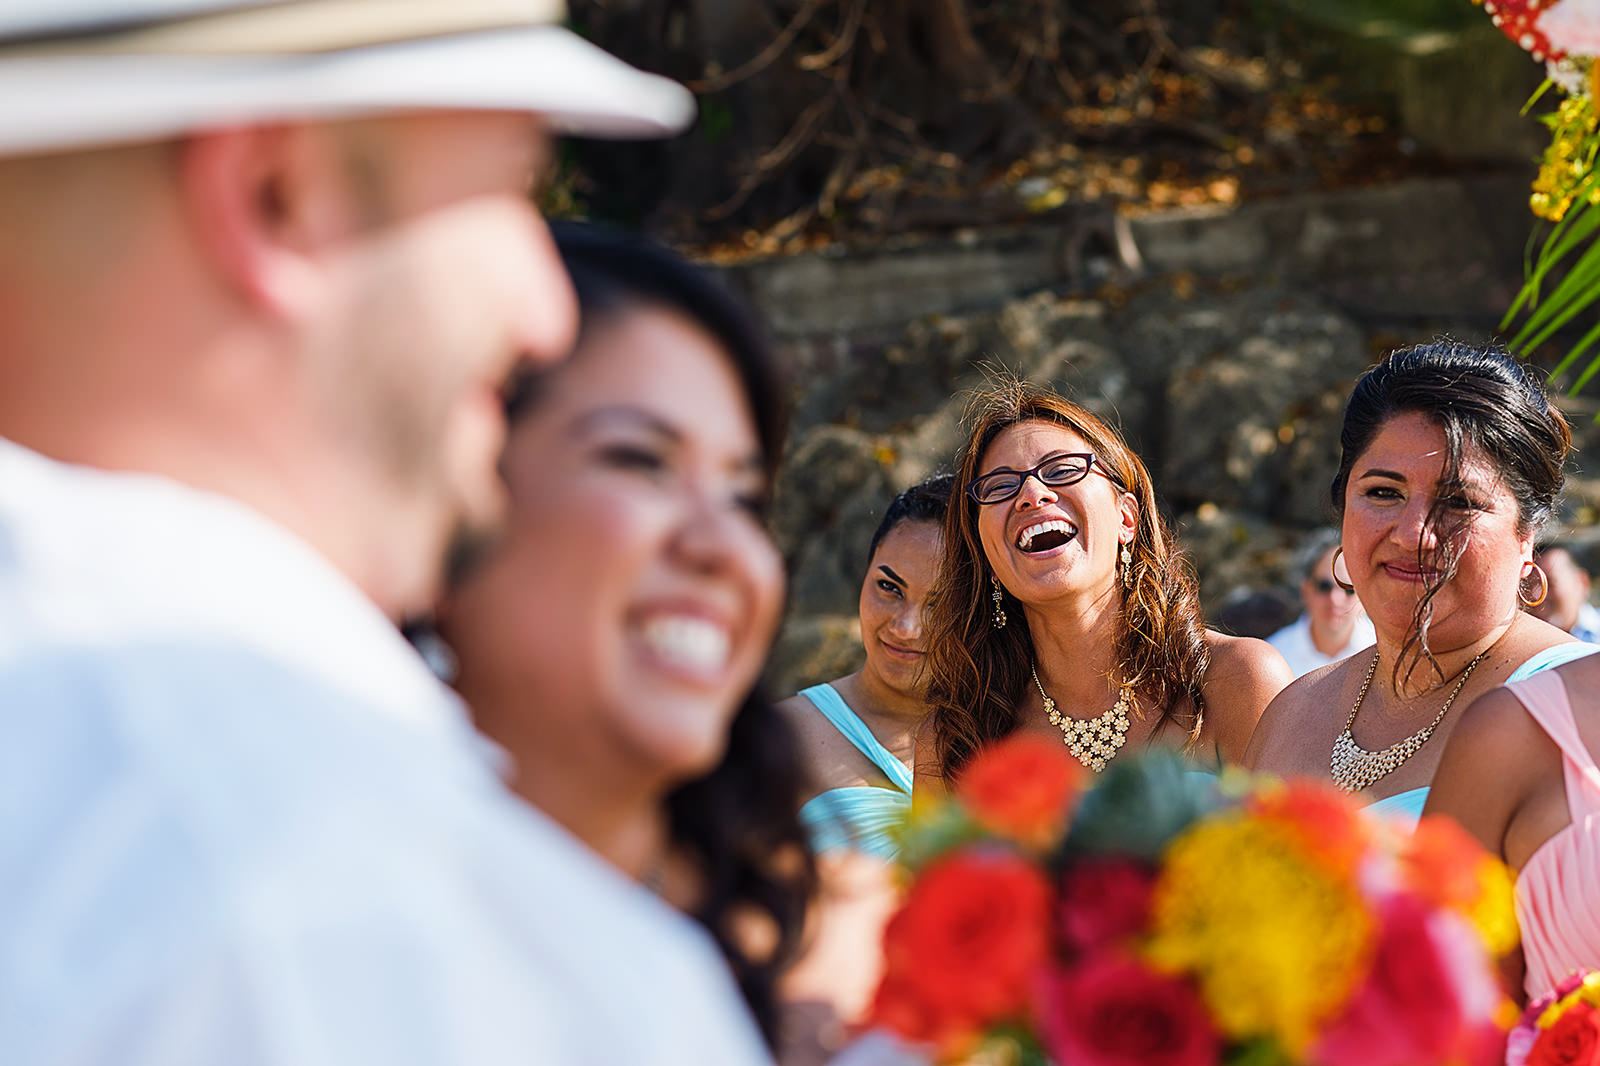 Bridesmaid laughs during beach wedding ceremony, bride and groom can be seen in foreground